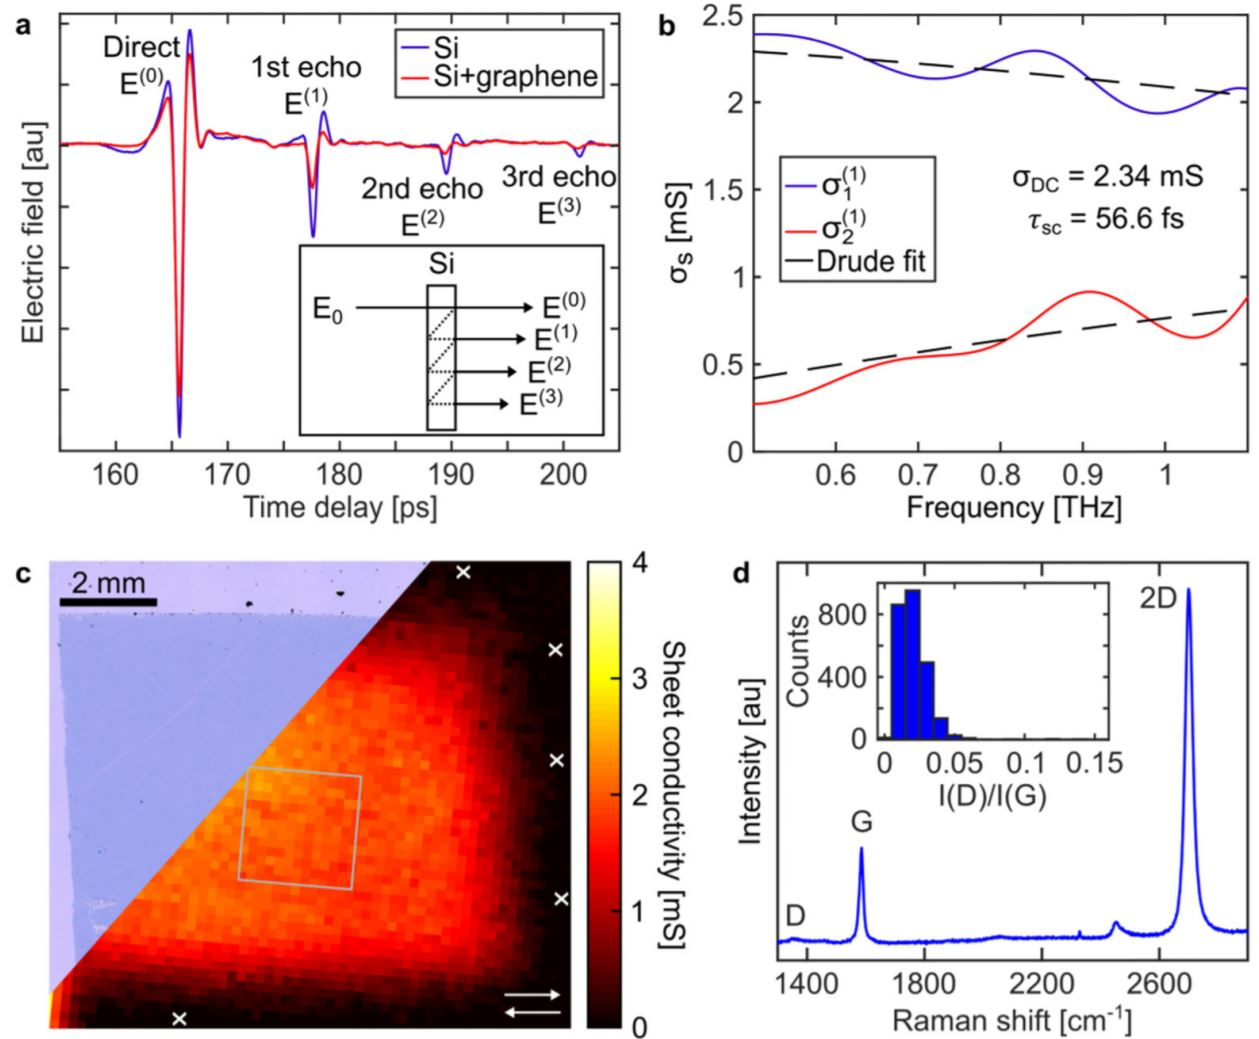 Robust mapping of electrical properties of graphene from terahertz time-domain spectroscopy with timing jitter correction